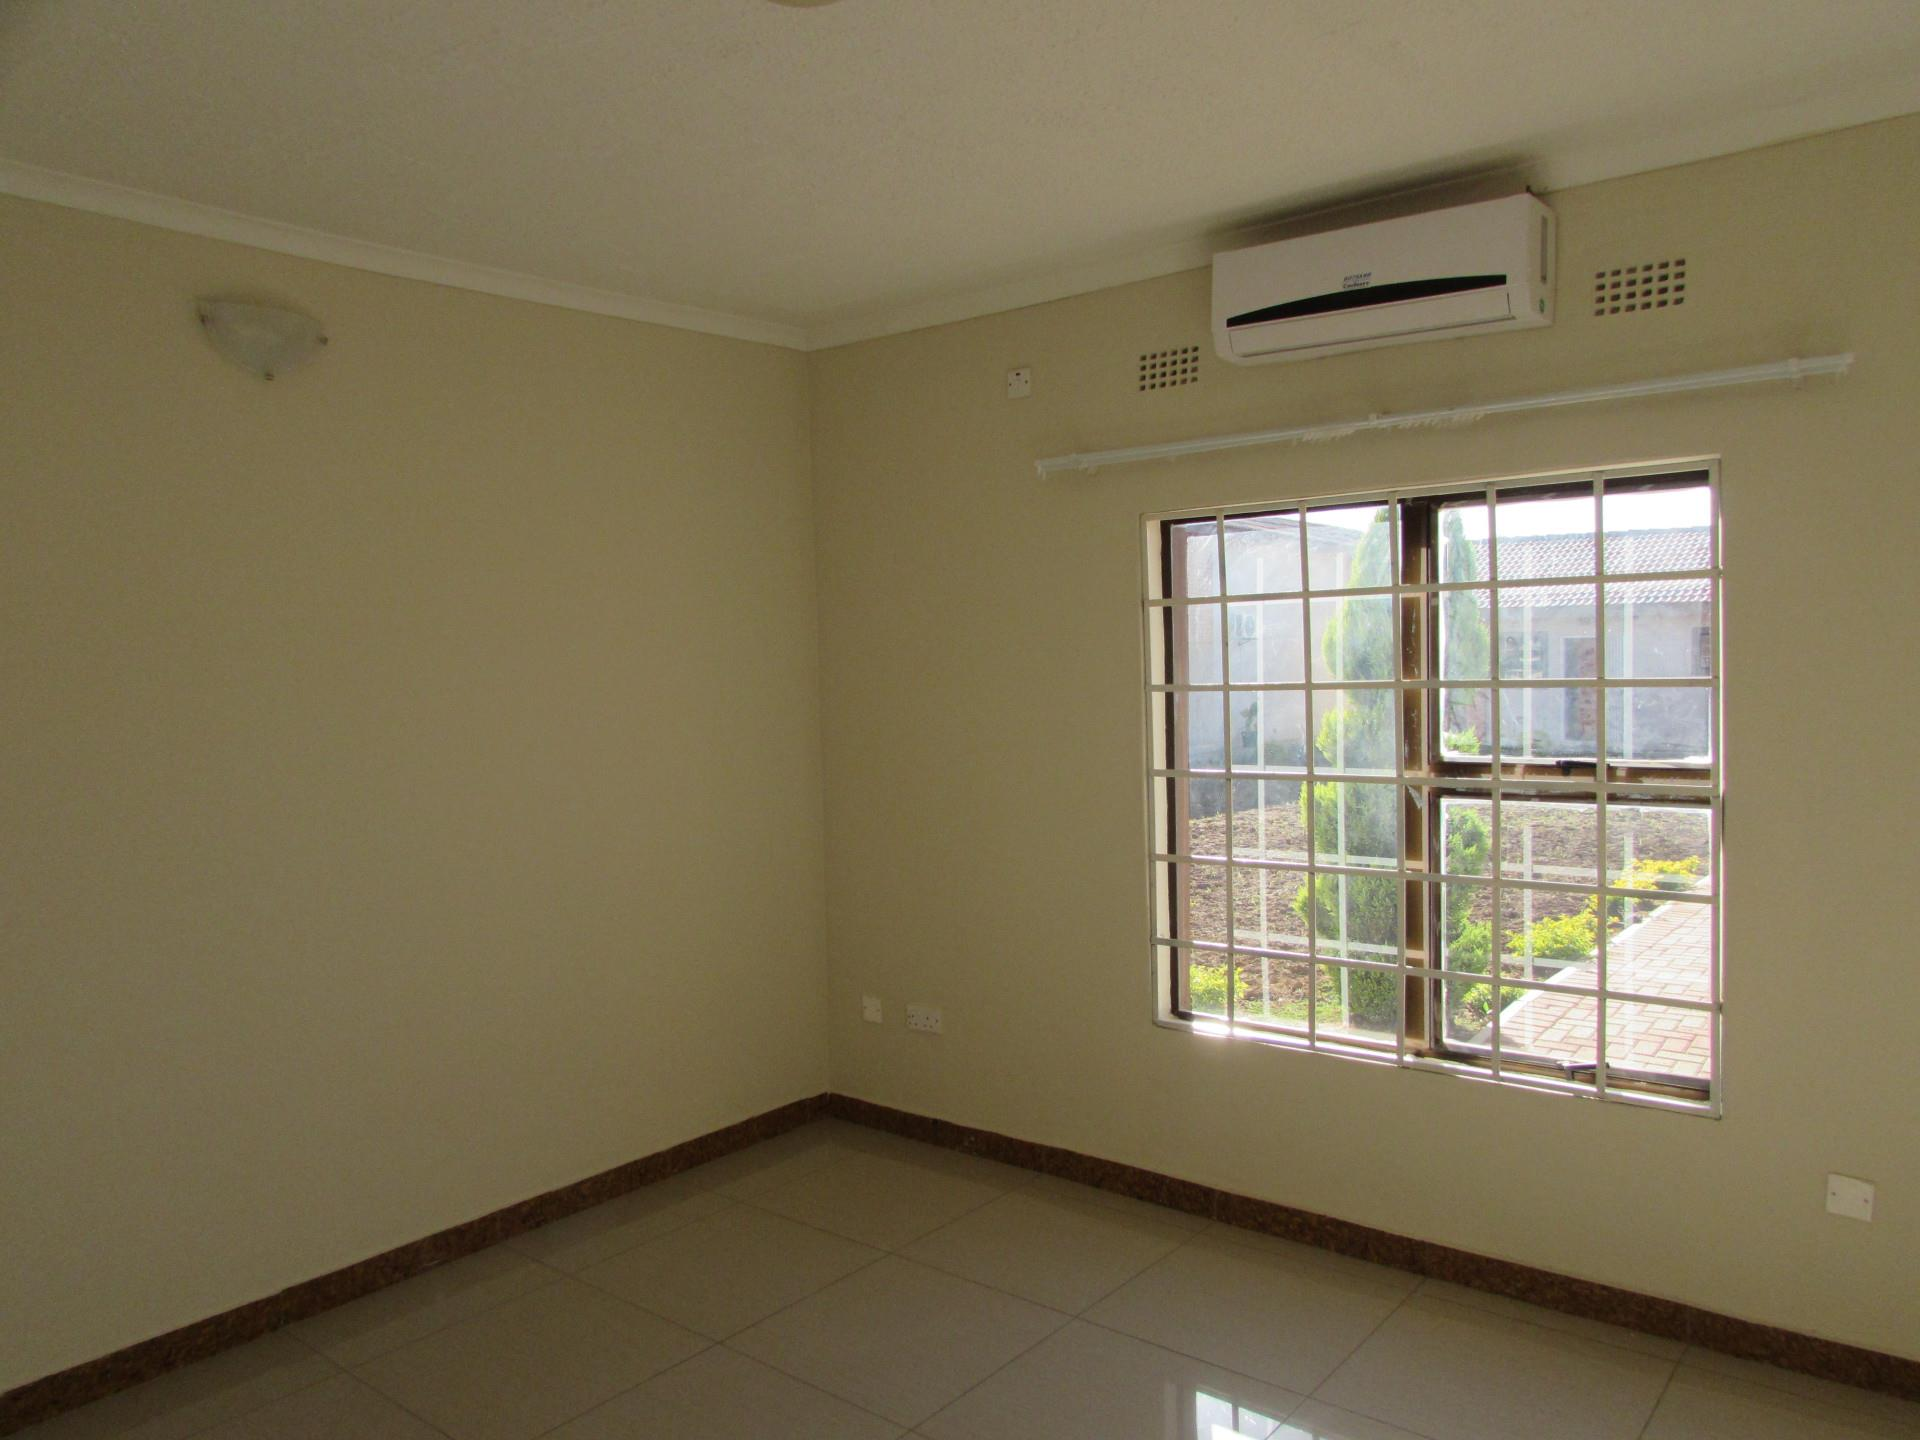 2 Bedroom Apartment / Flat To Rent in Mogoditshane Central